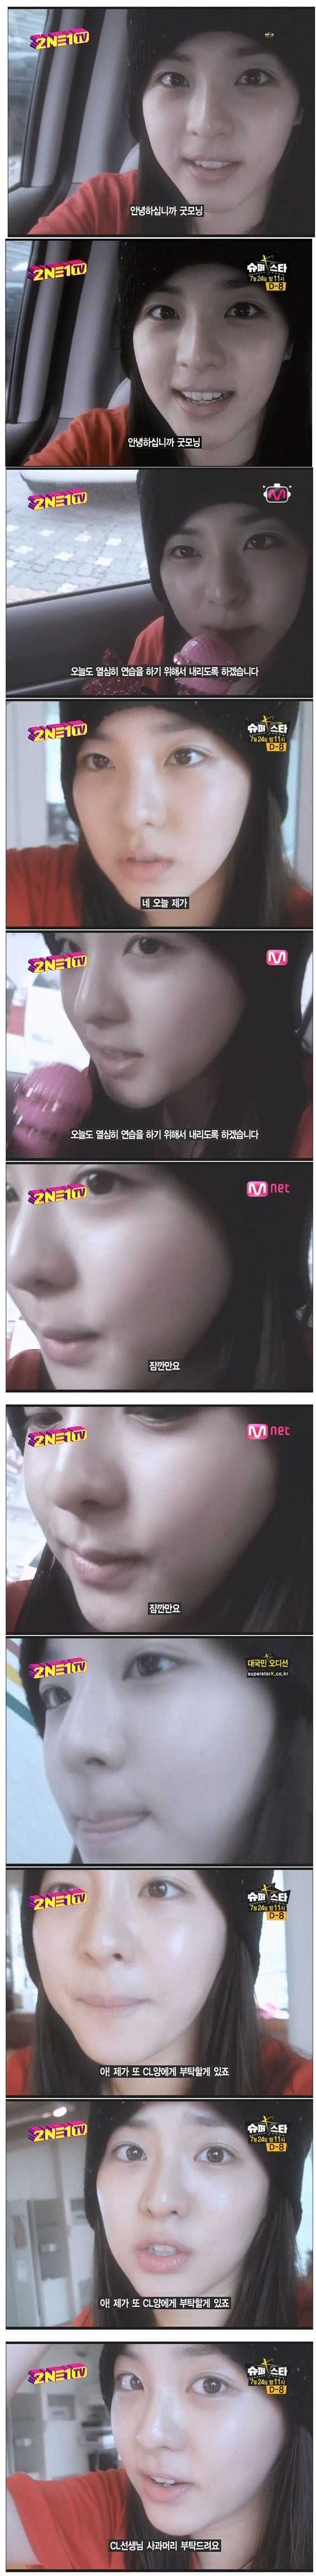 2NE1 TV Season 2 Featuring Sandara Park